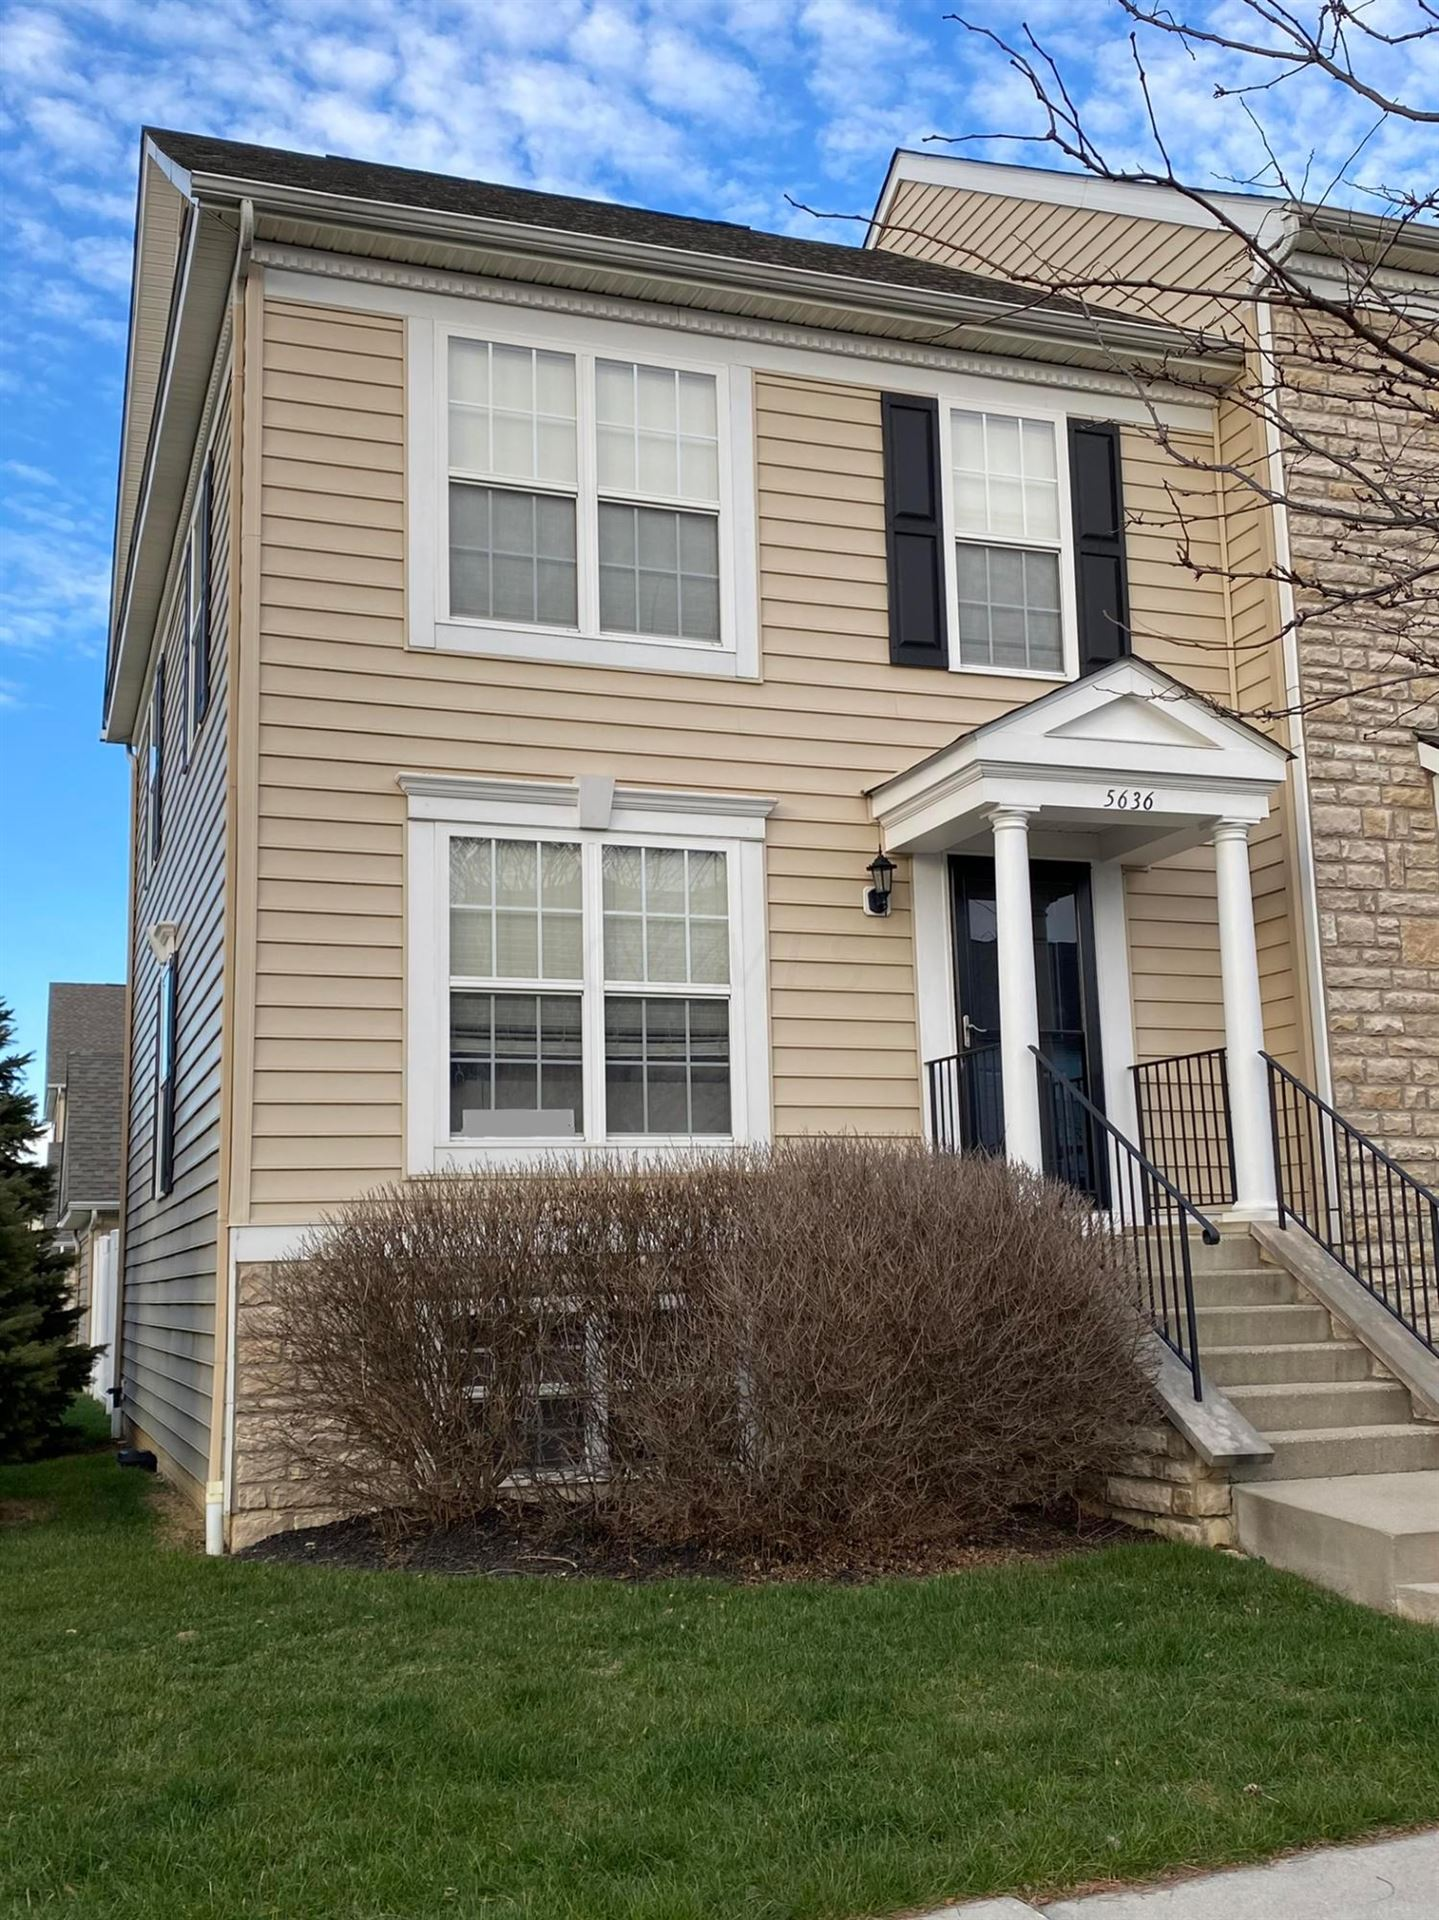 Photo of 5636 Middle Falls Street #57-533, Dublin, OH 43016 (MLS # 220041649)